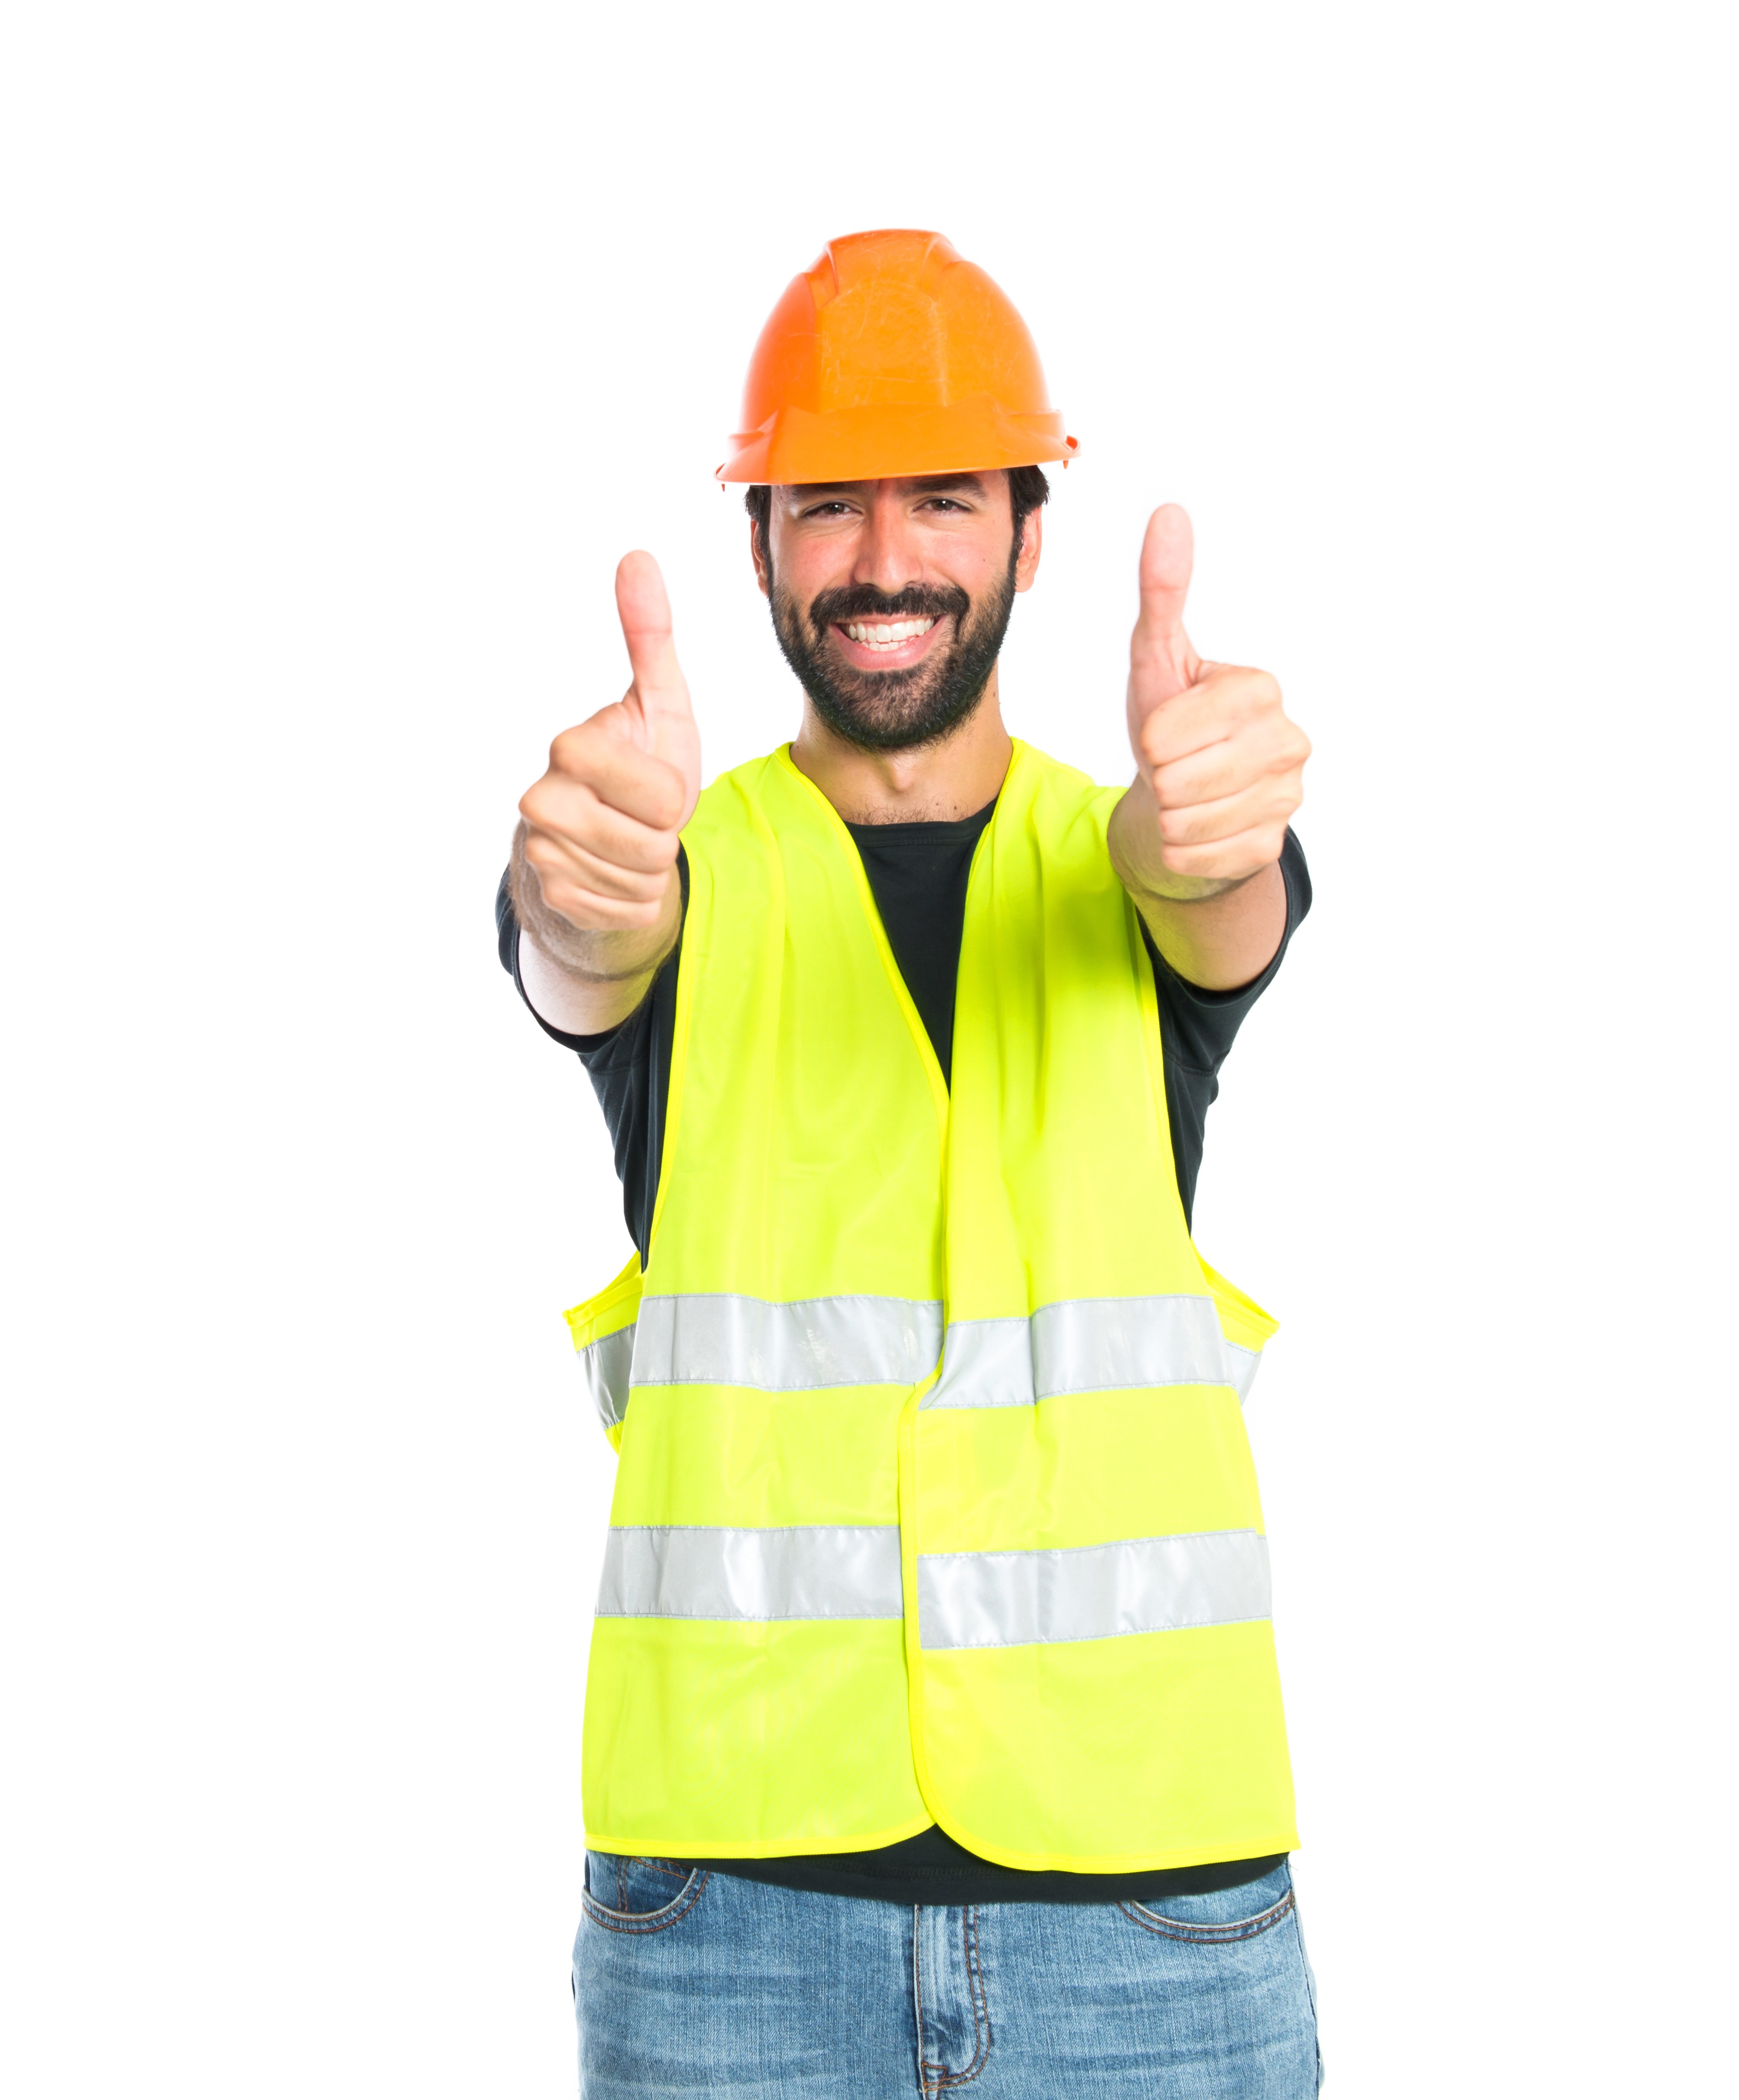 workman-with-thumb-up-over-white-background